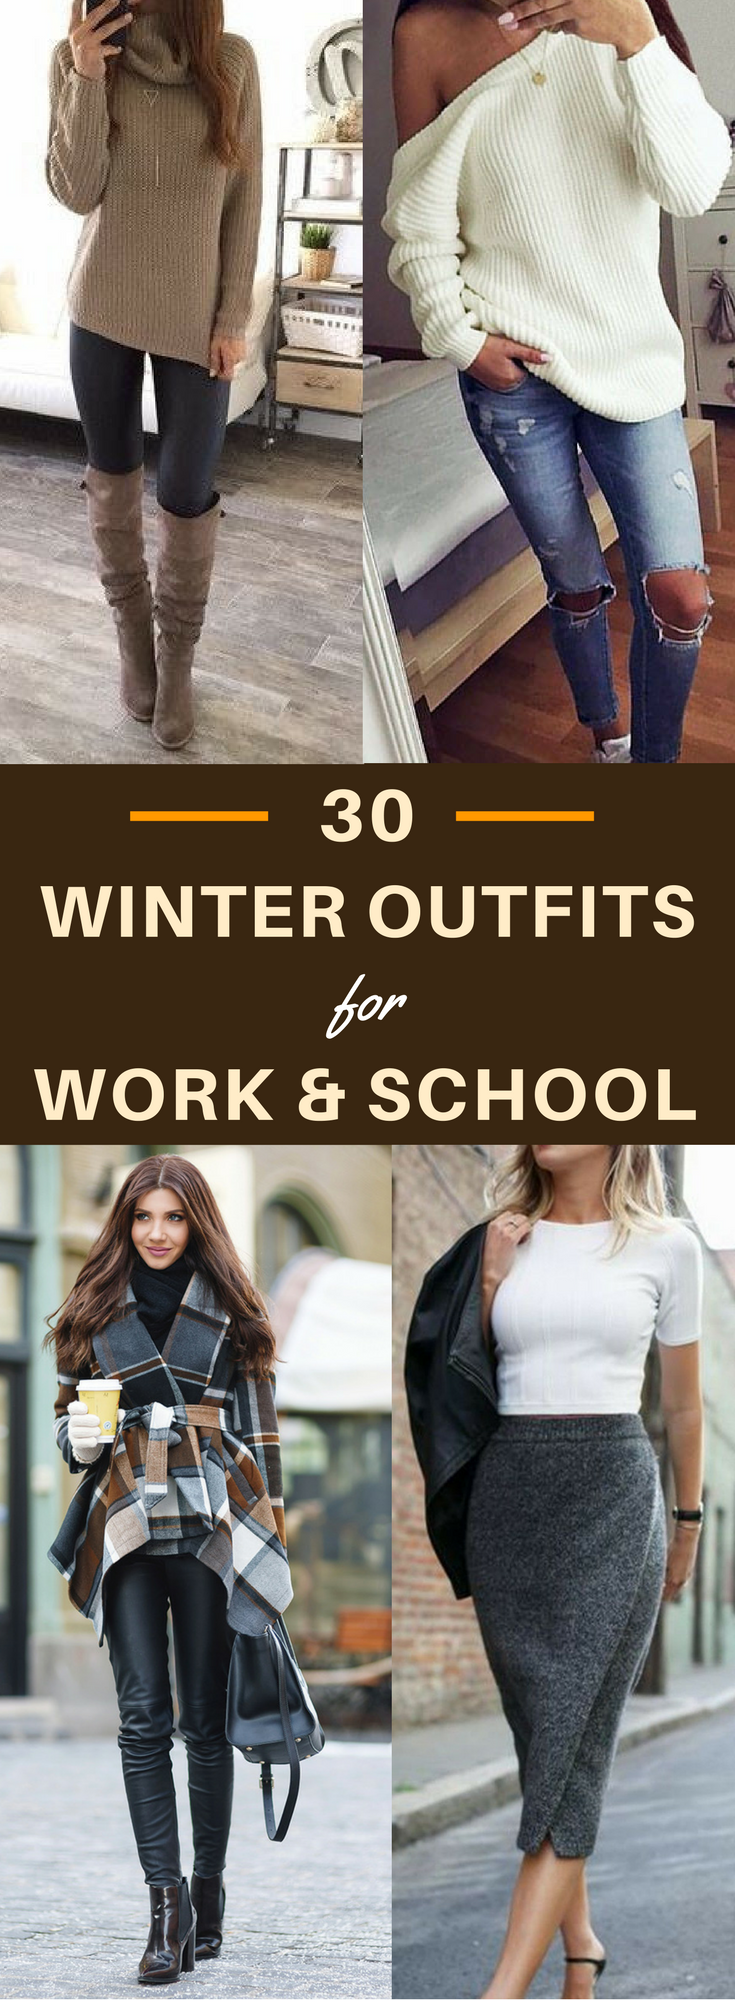 Fashion style Outfits stylish for school for woman